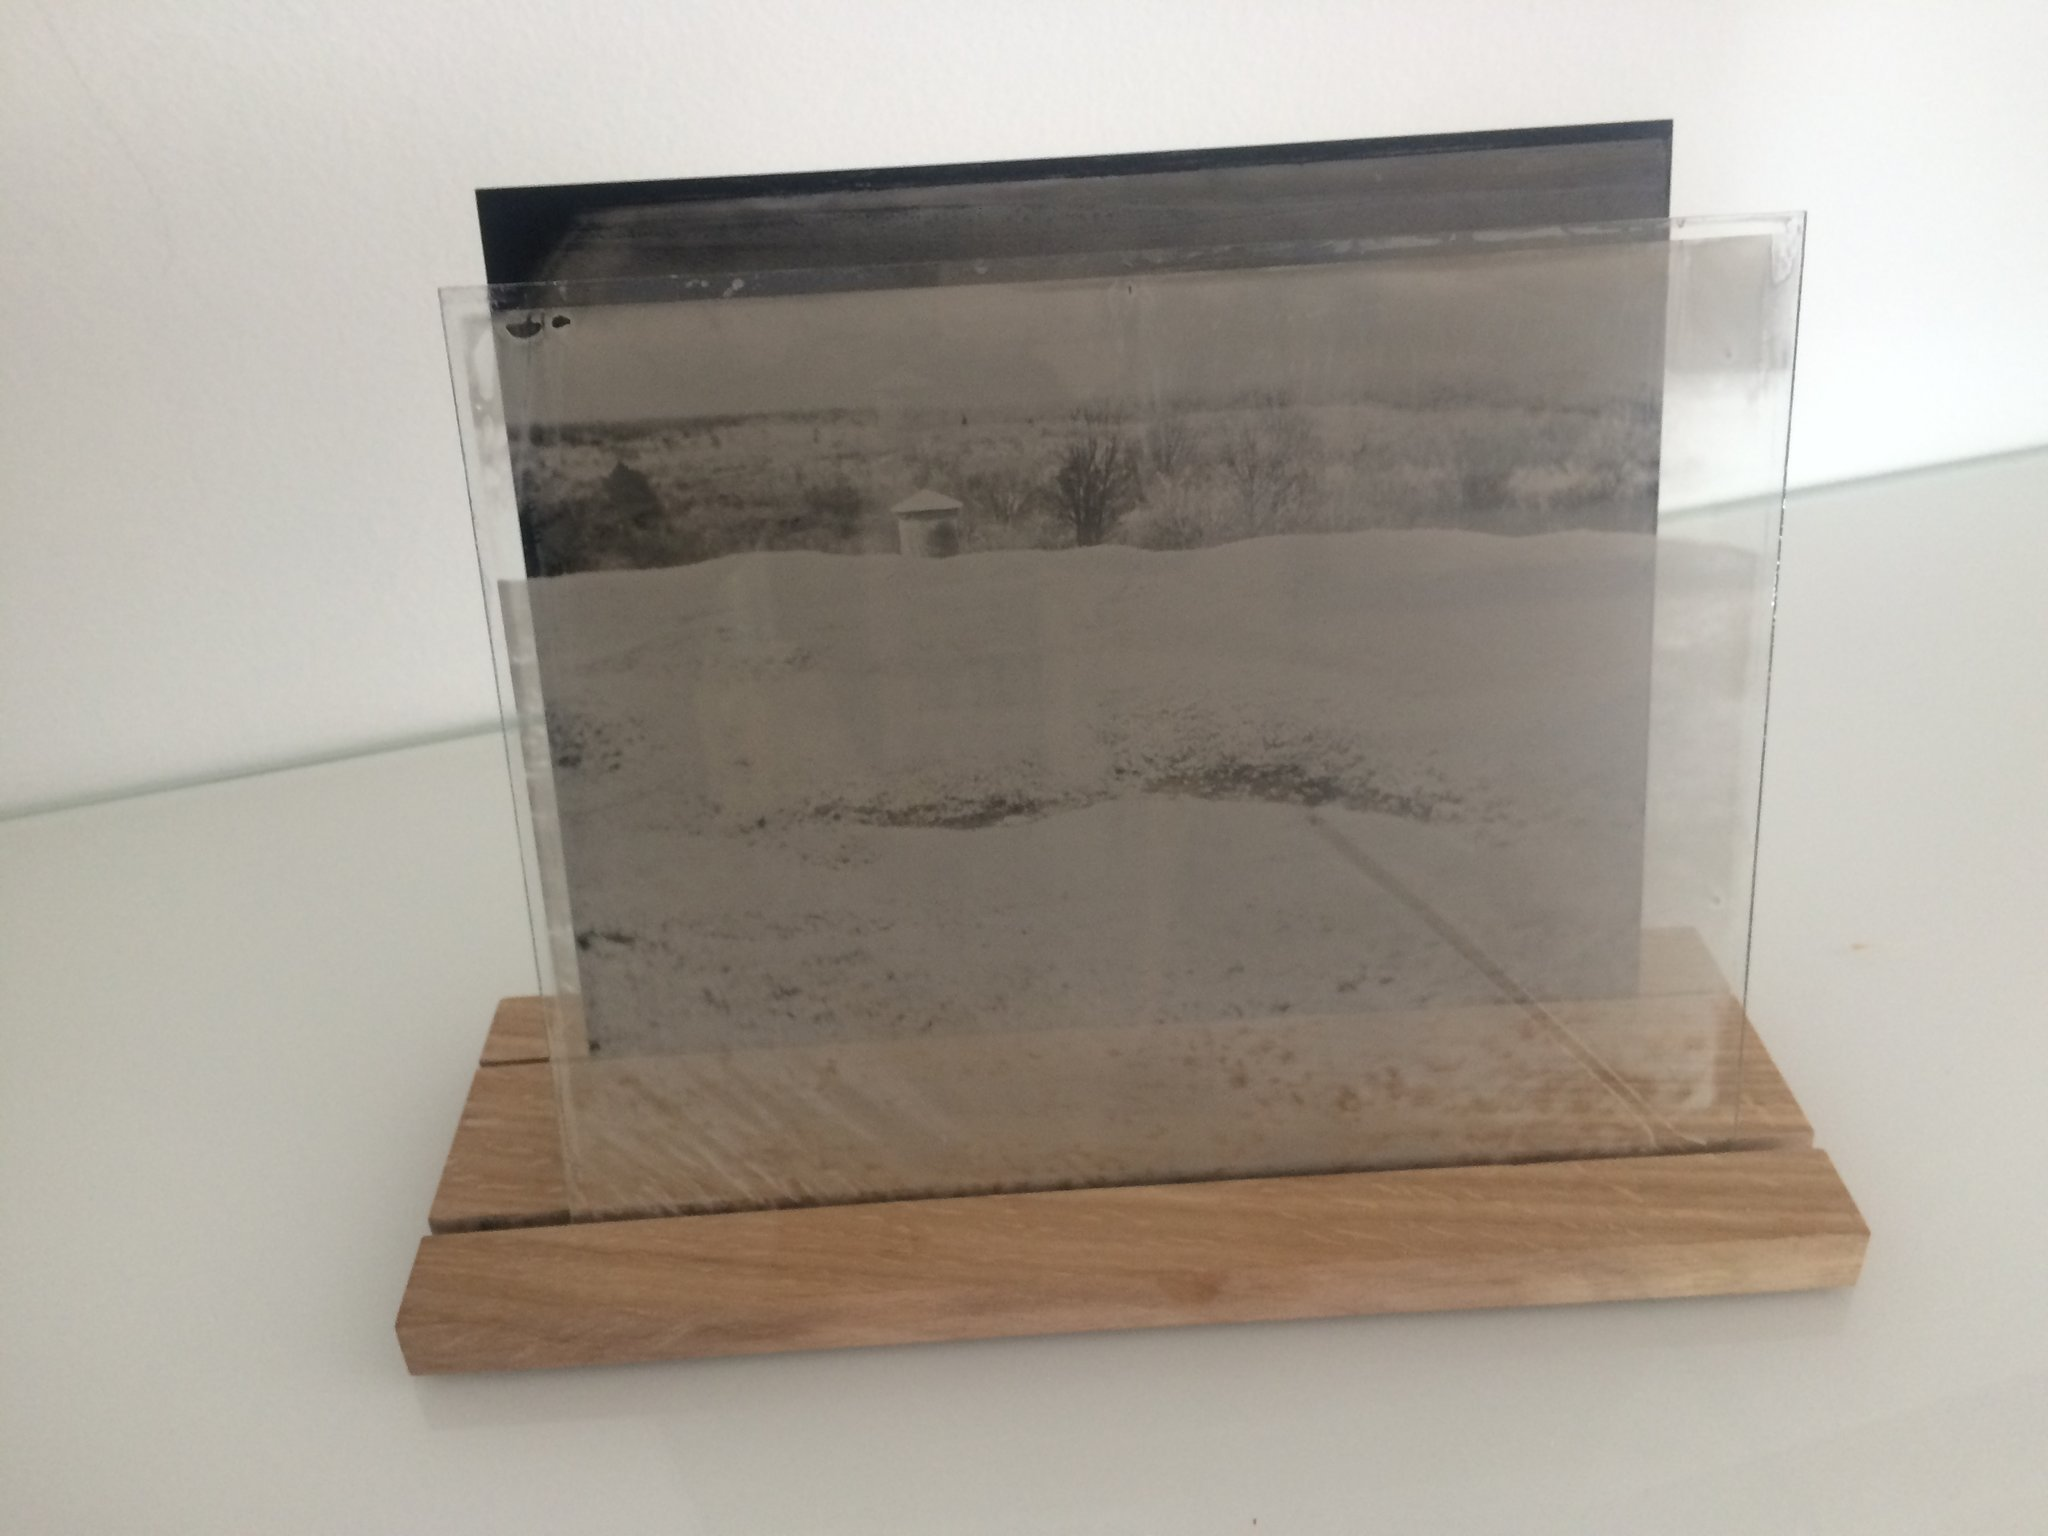 Installation-VERDUN IN MEMORIAM-collodion-007.JPG